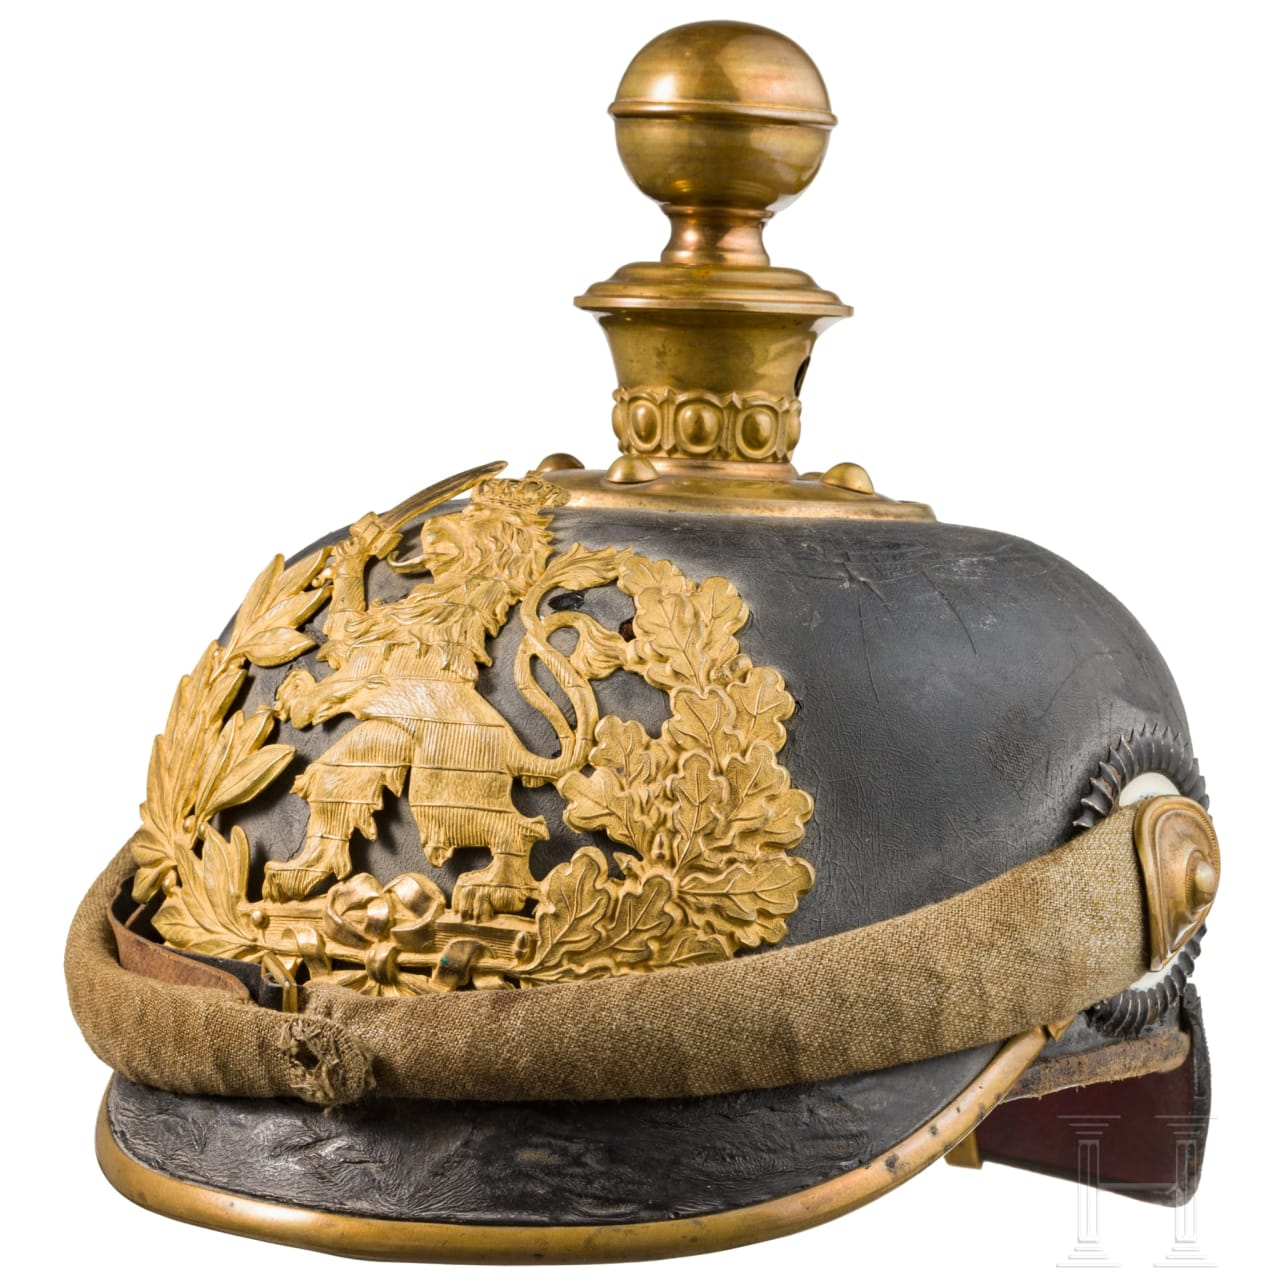 A spike helmet for a Hessian officer's candidate